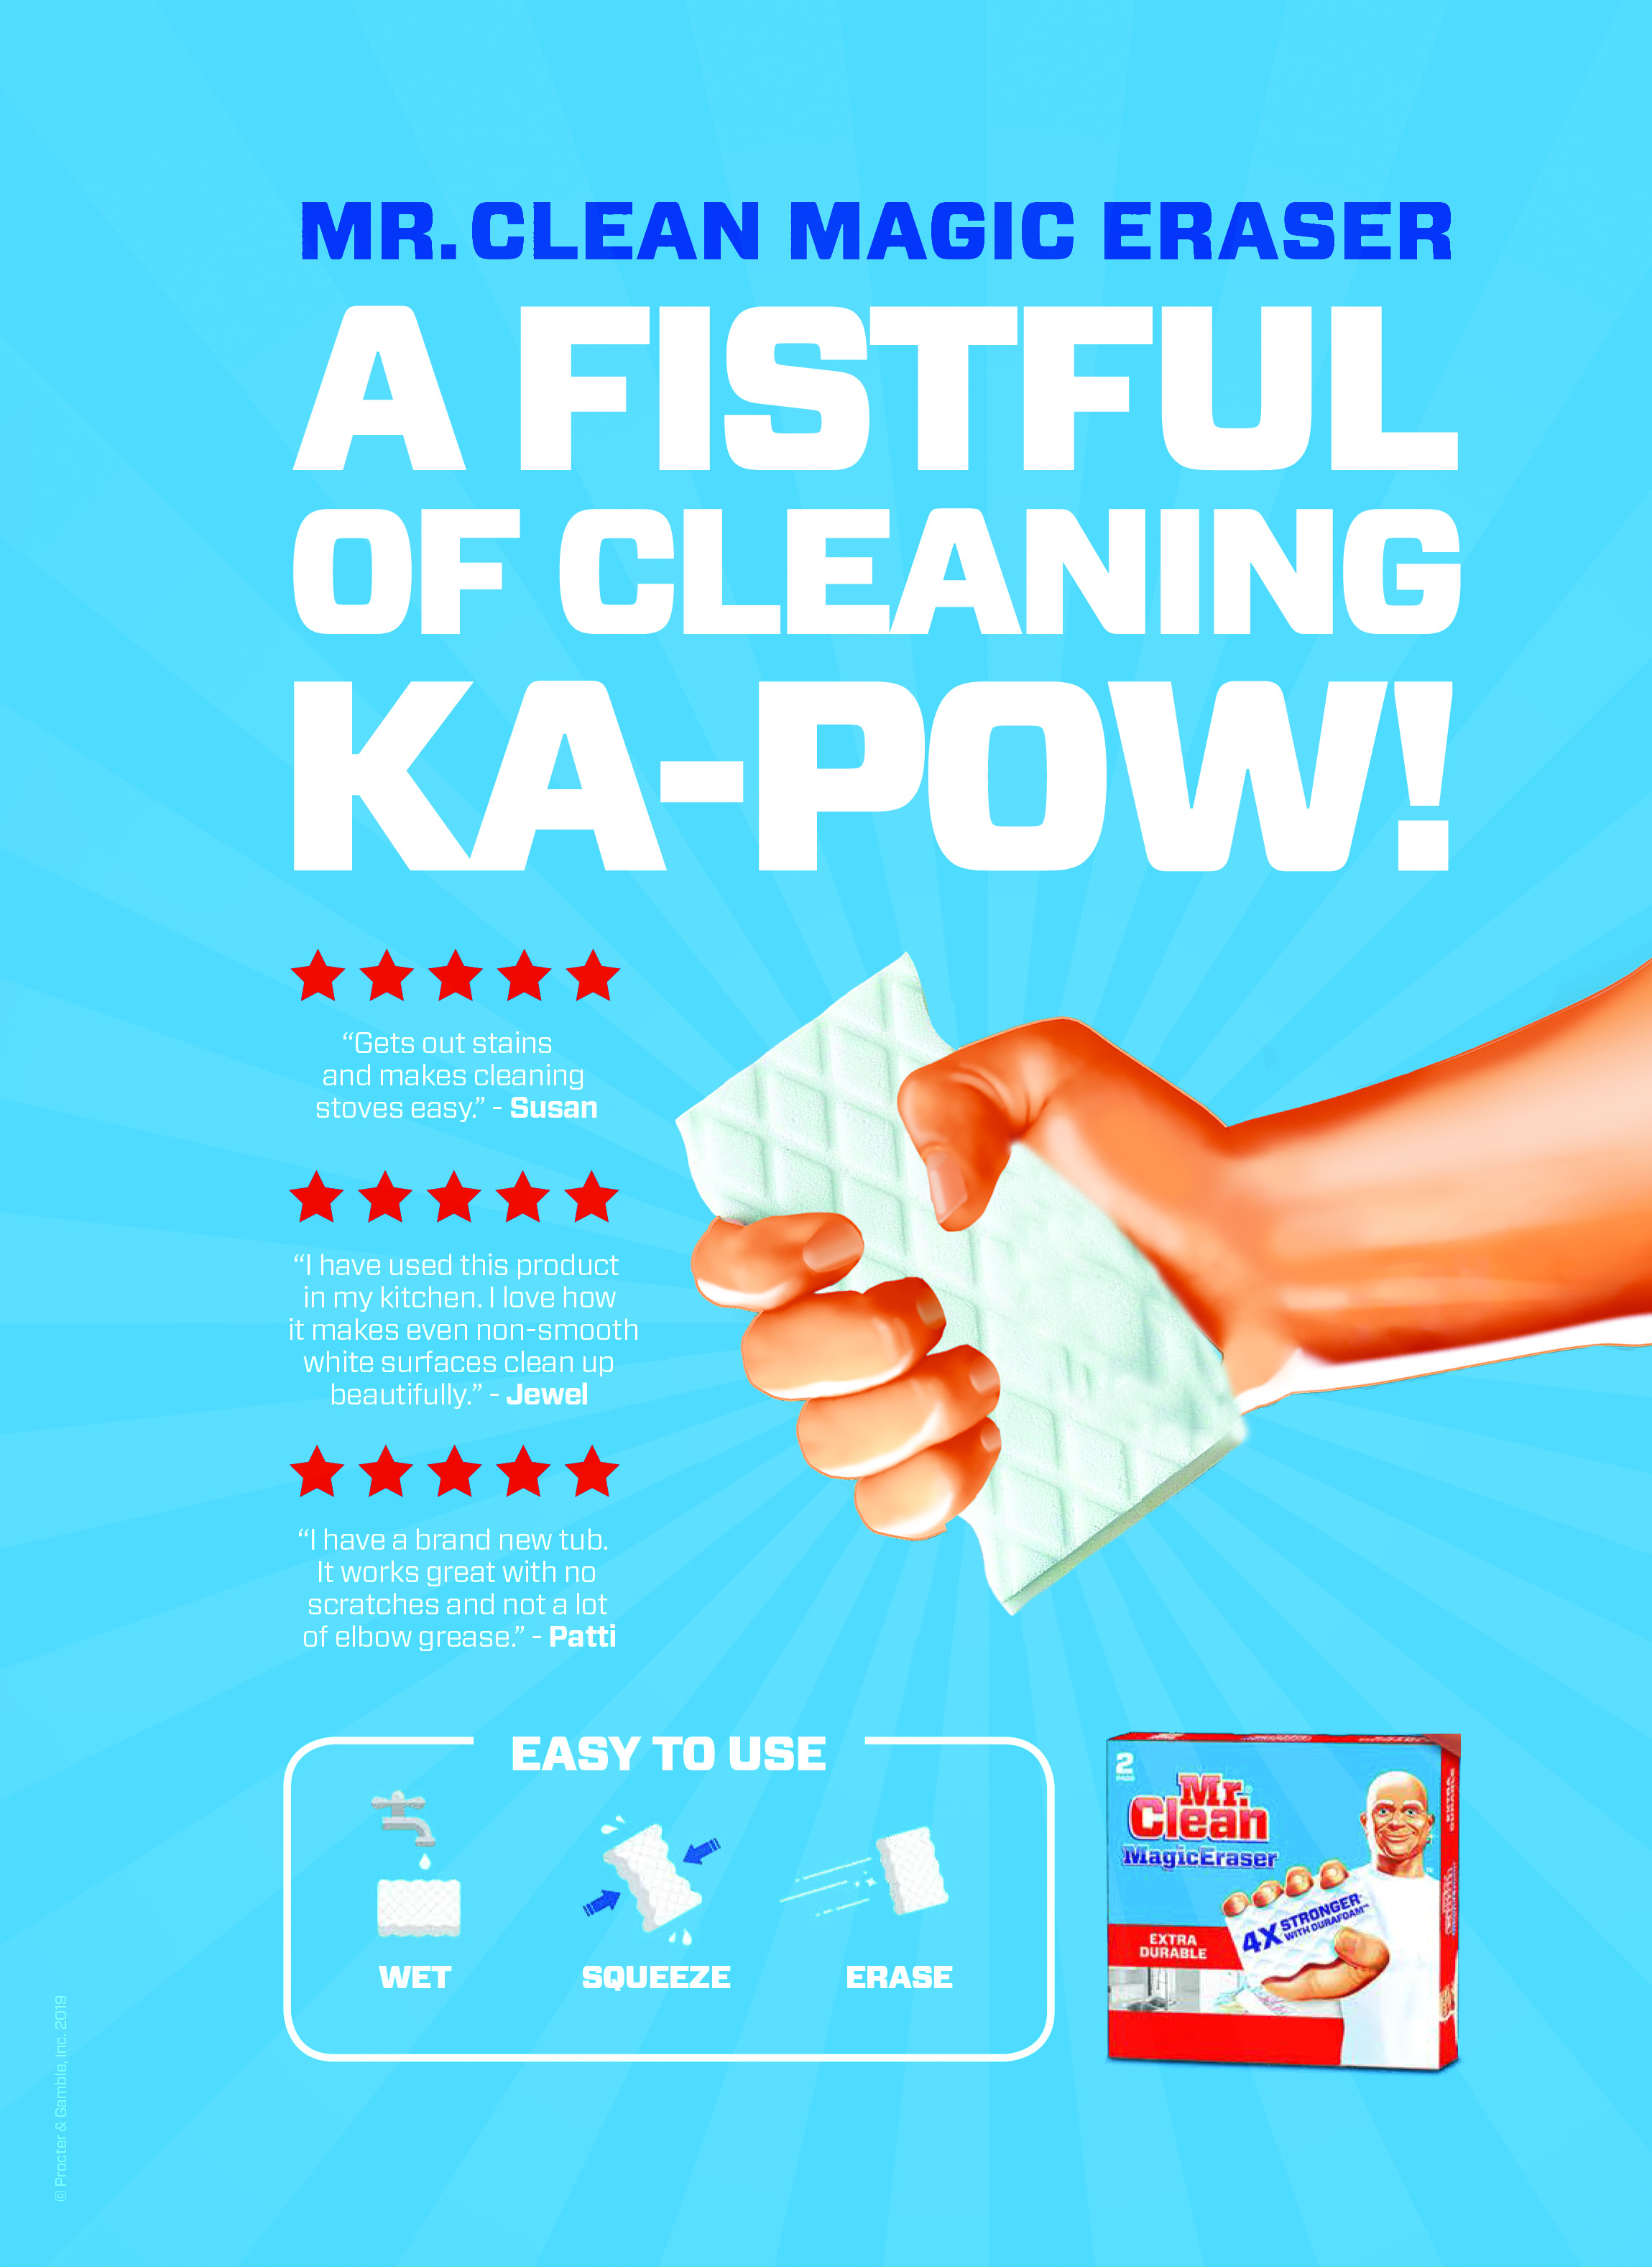 Mr Clean Advertorial - Featured in Good House Keeping Magazine, this Print ad, combines informational advertising a punchy tone of voice and an infographic visual approach to convey all of our benefits.